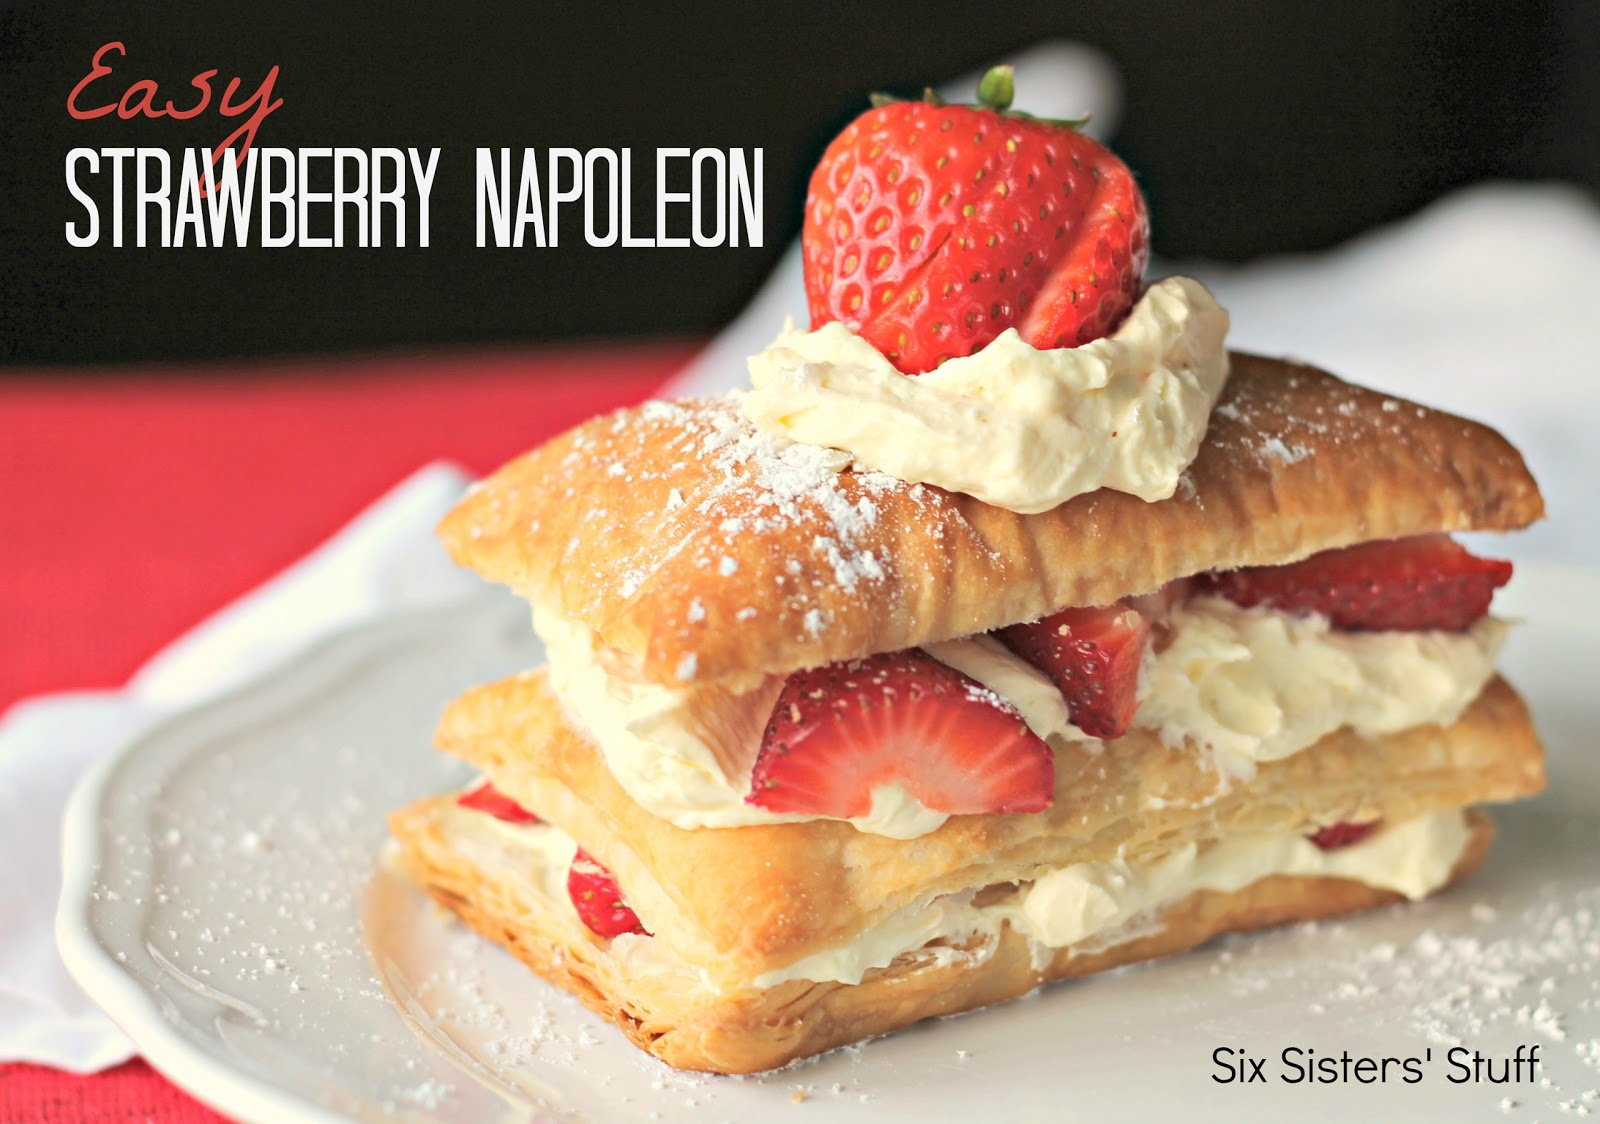 Easy Strawberry Napoleon